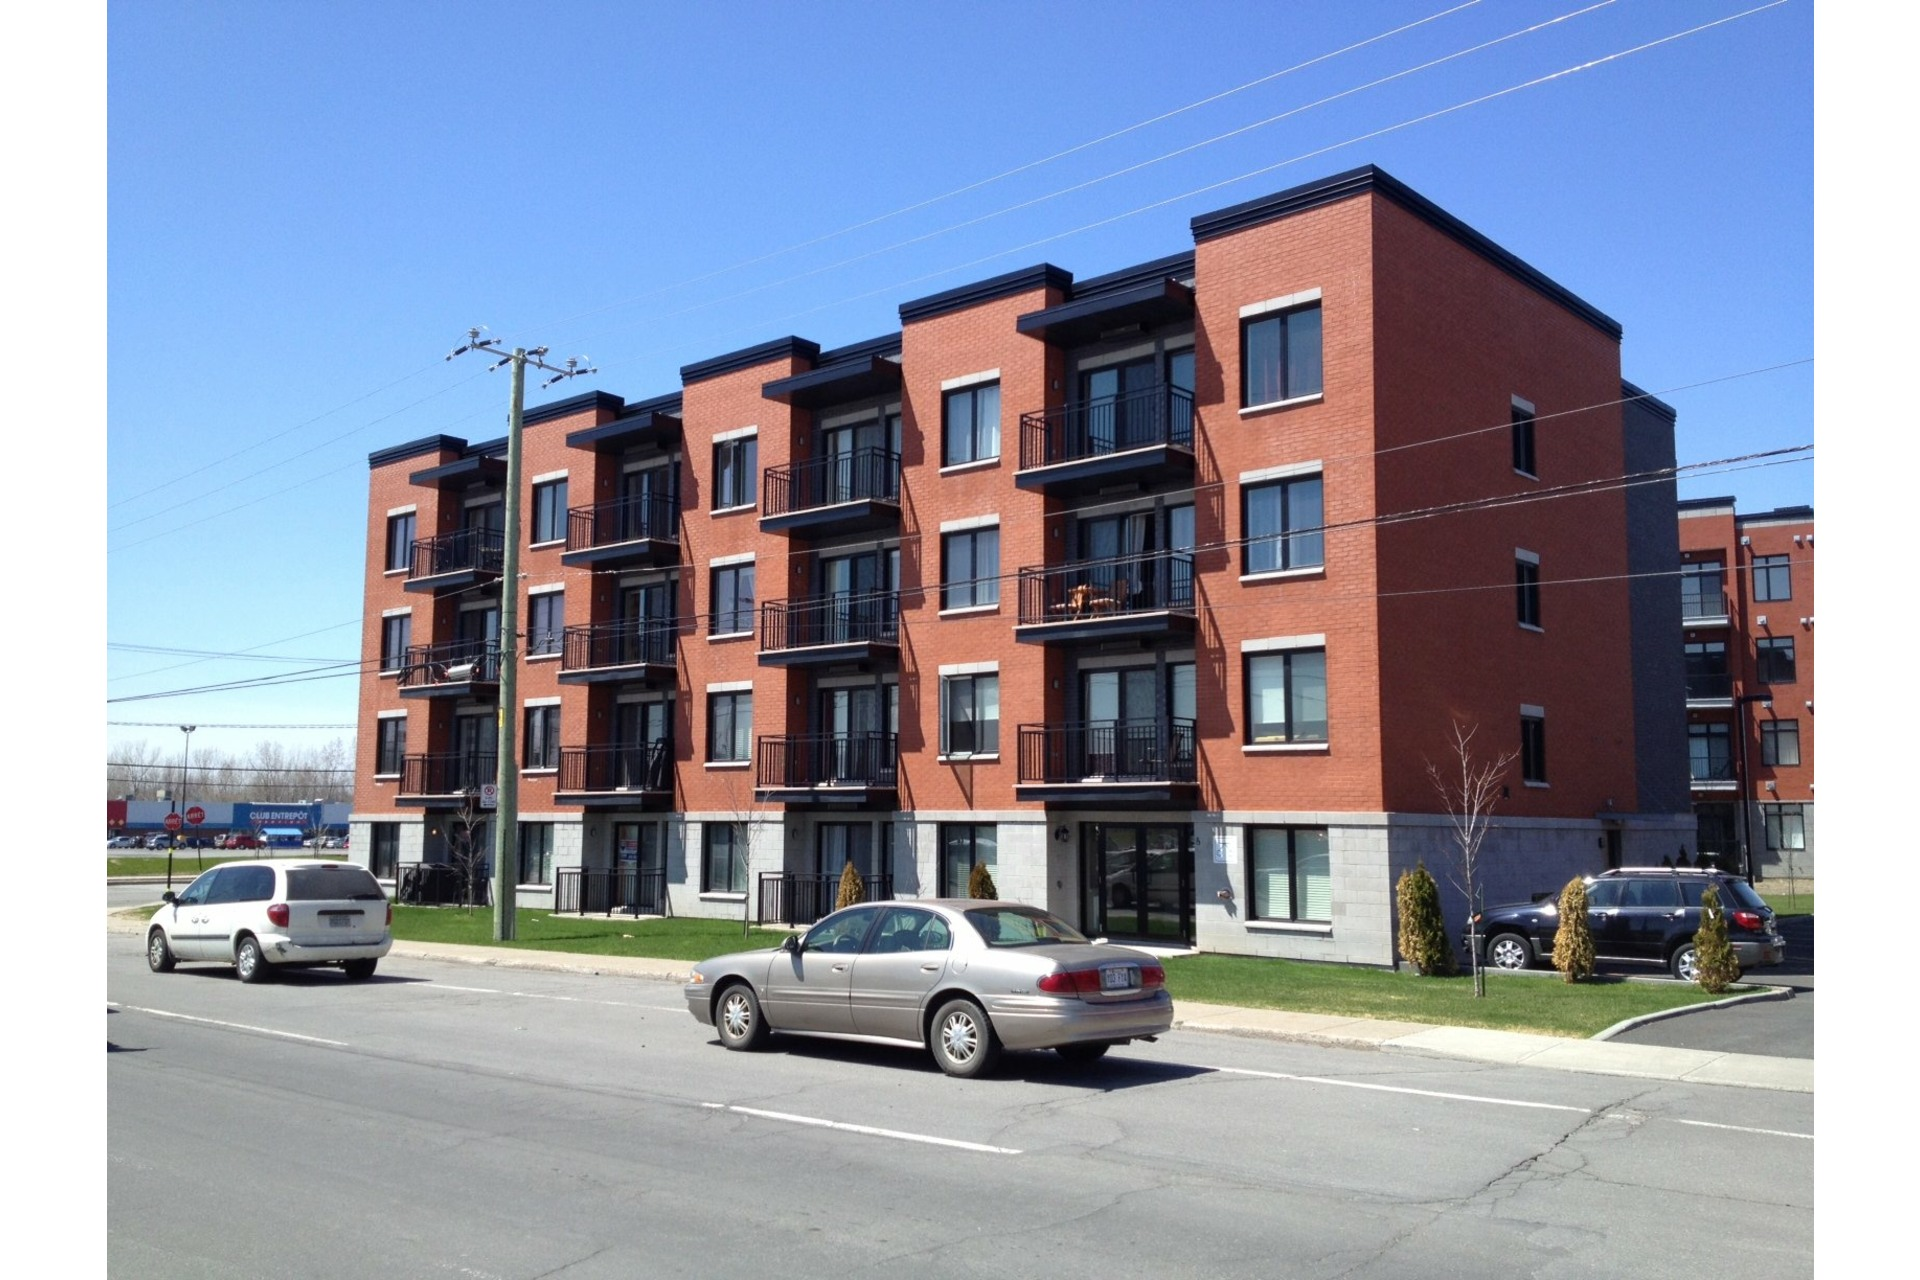 image 2 - Apartment For sale Le Vieux-Longueuil Longueuil  - 5 rooms